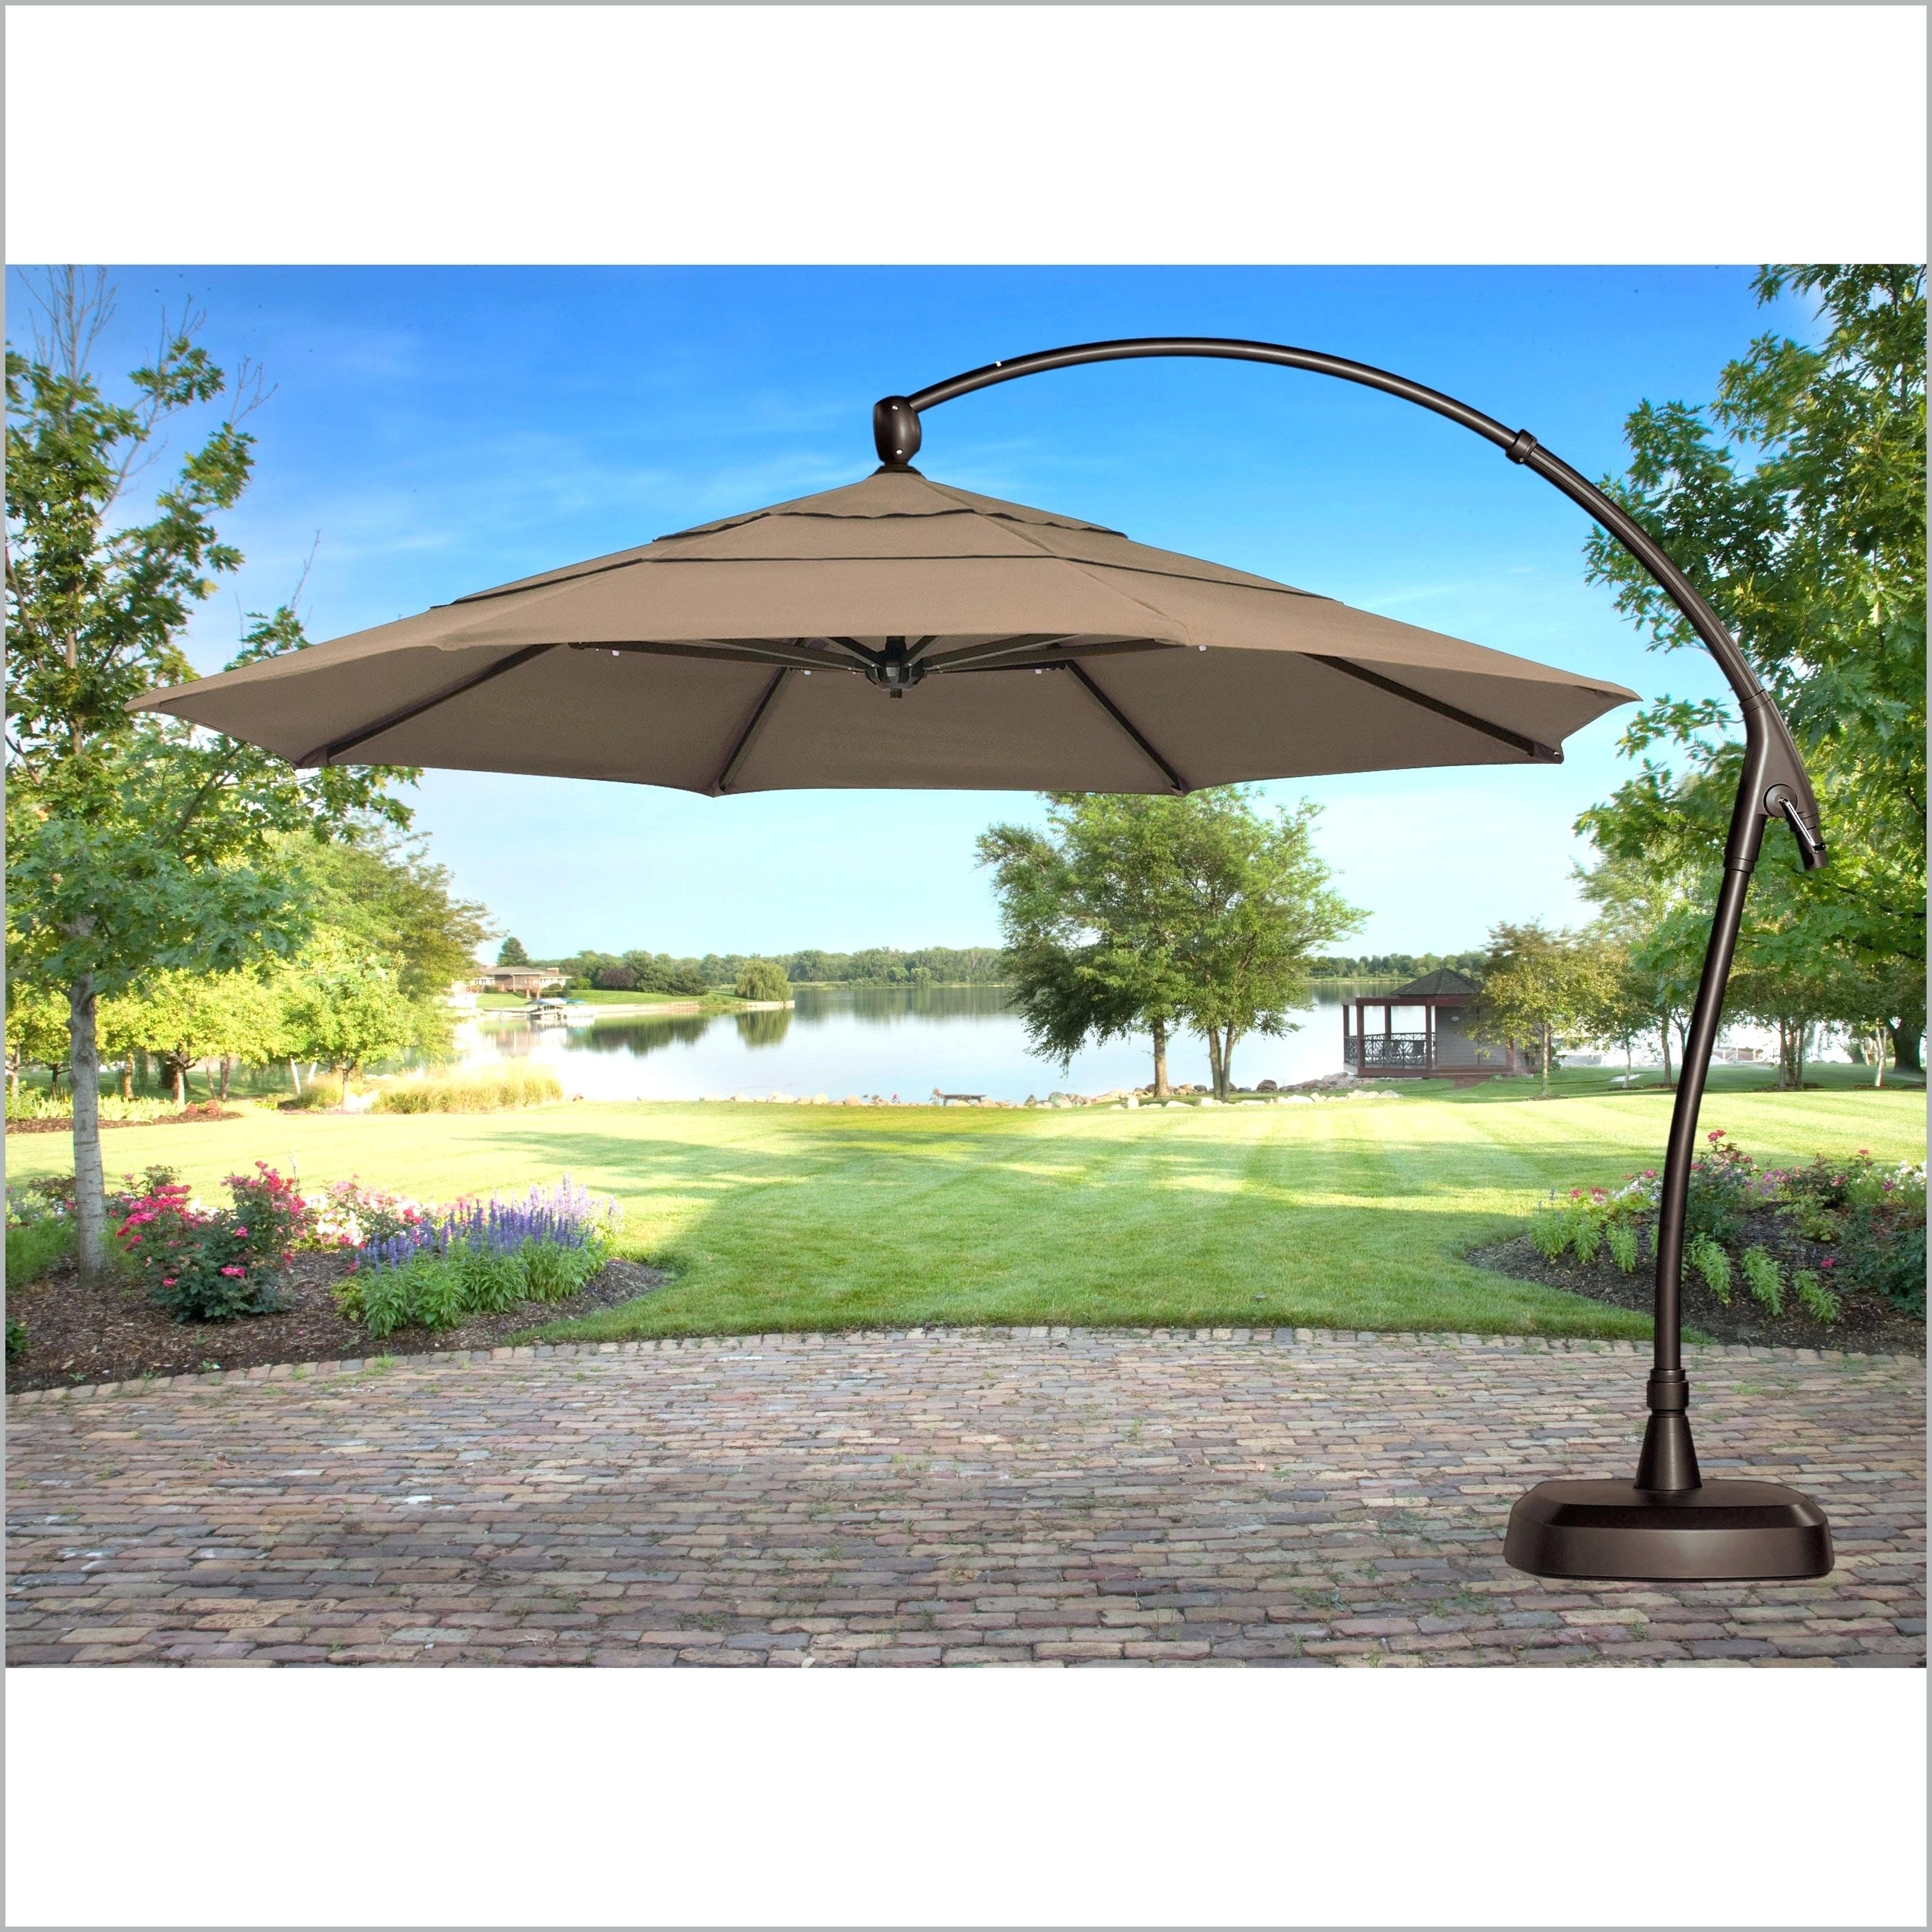 Lowes Patio Umbrellas Within 2018 Lowes Umbrella Base Patio Umbrellas With Lights Table Pics – Mrze (Gallery 8 of 20)